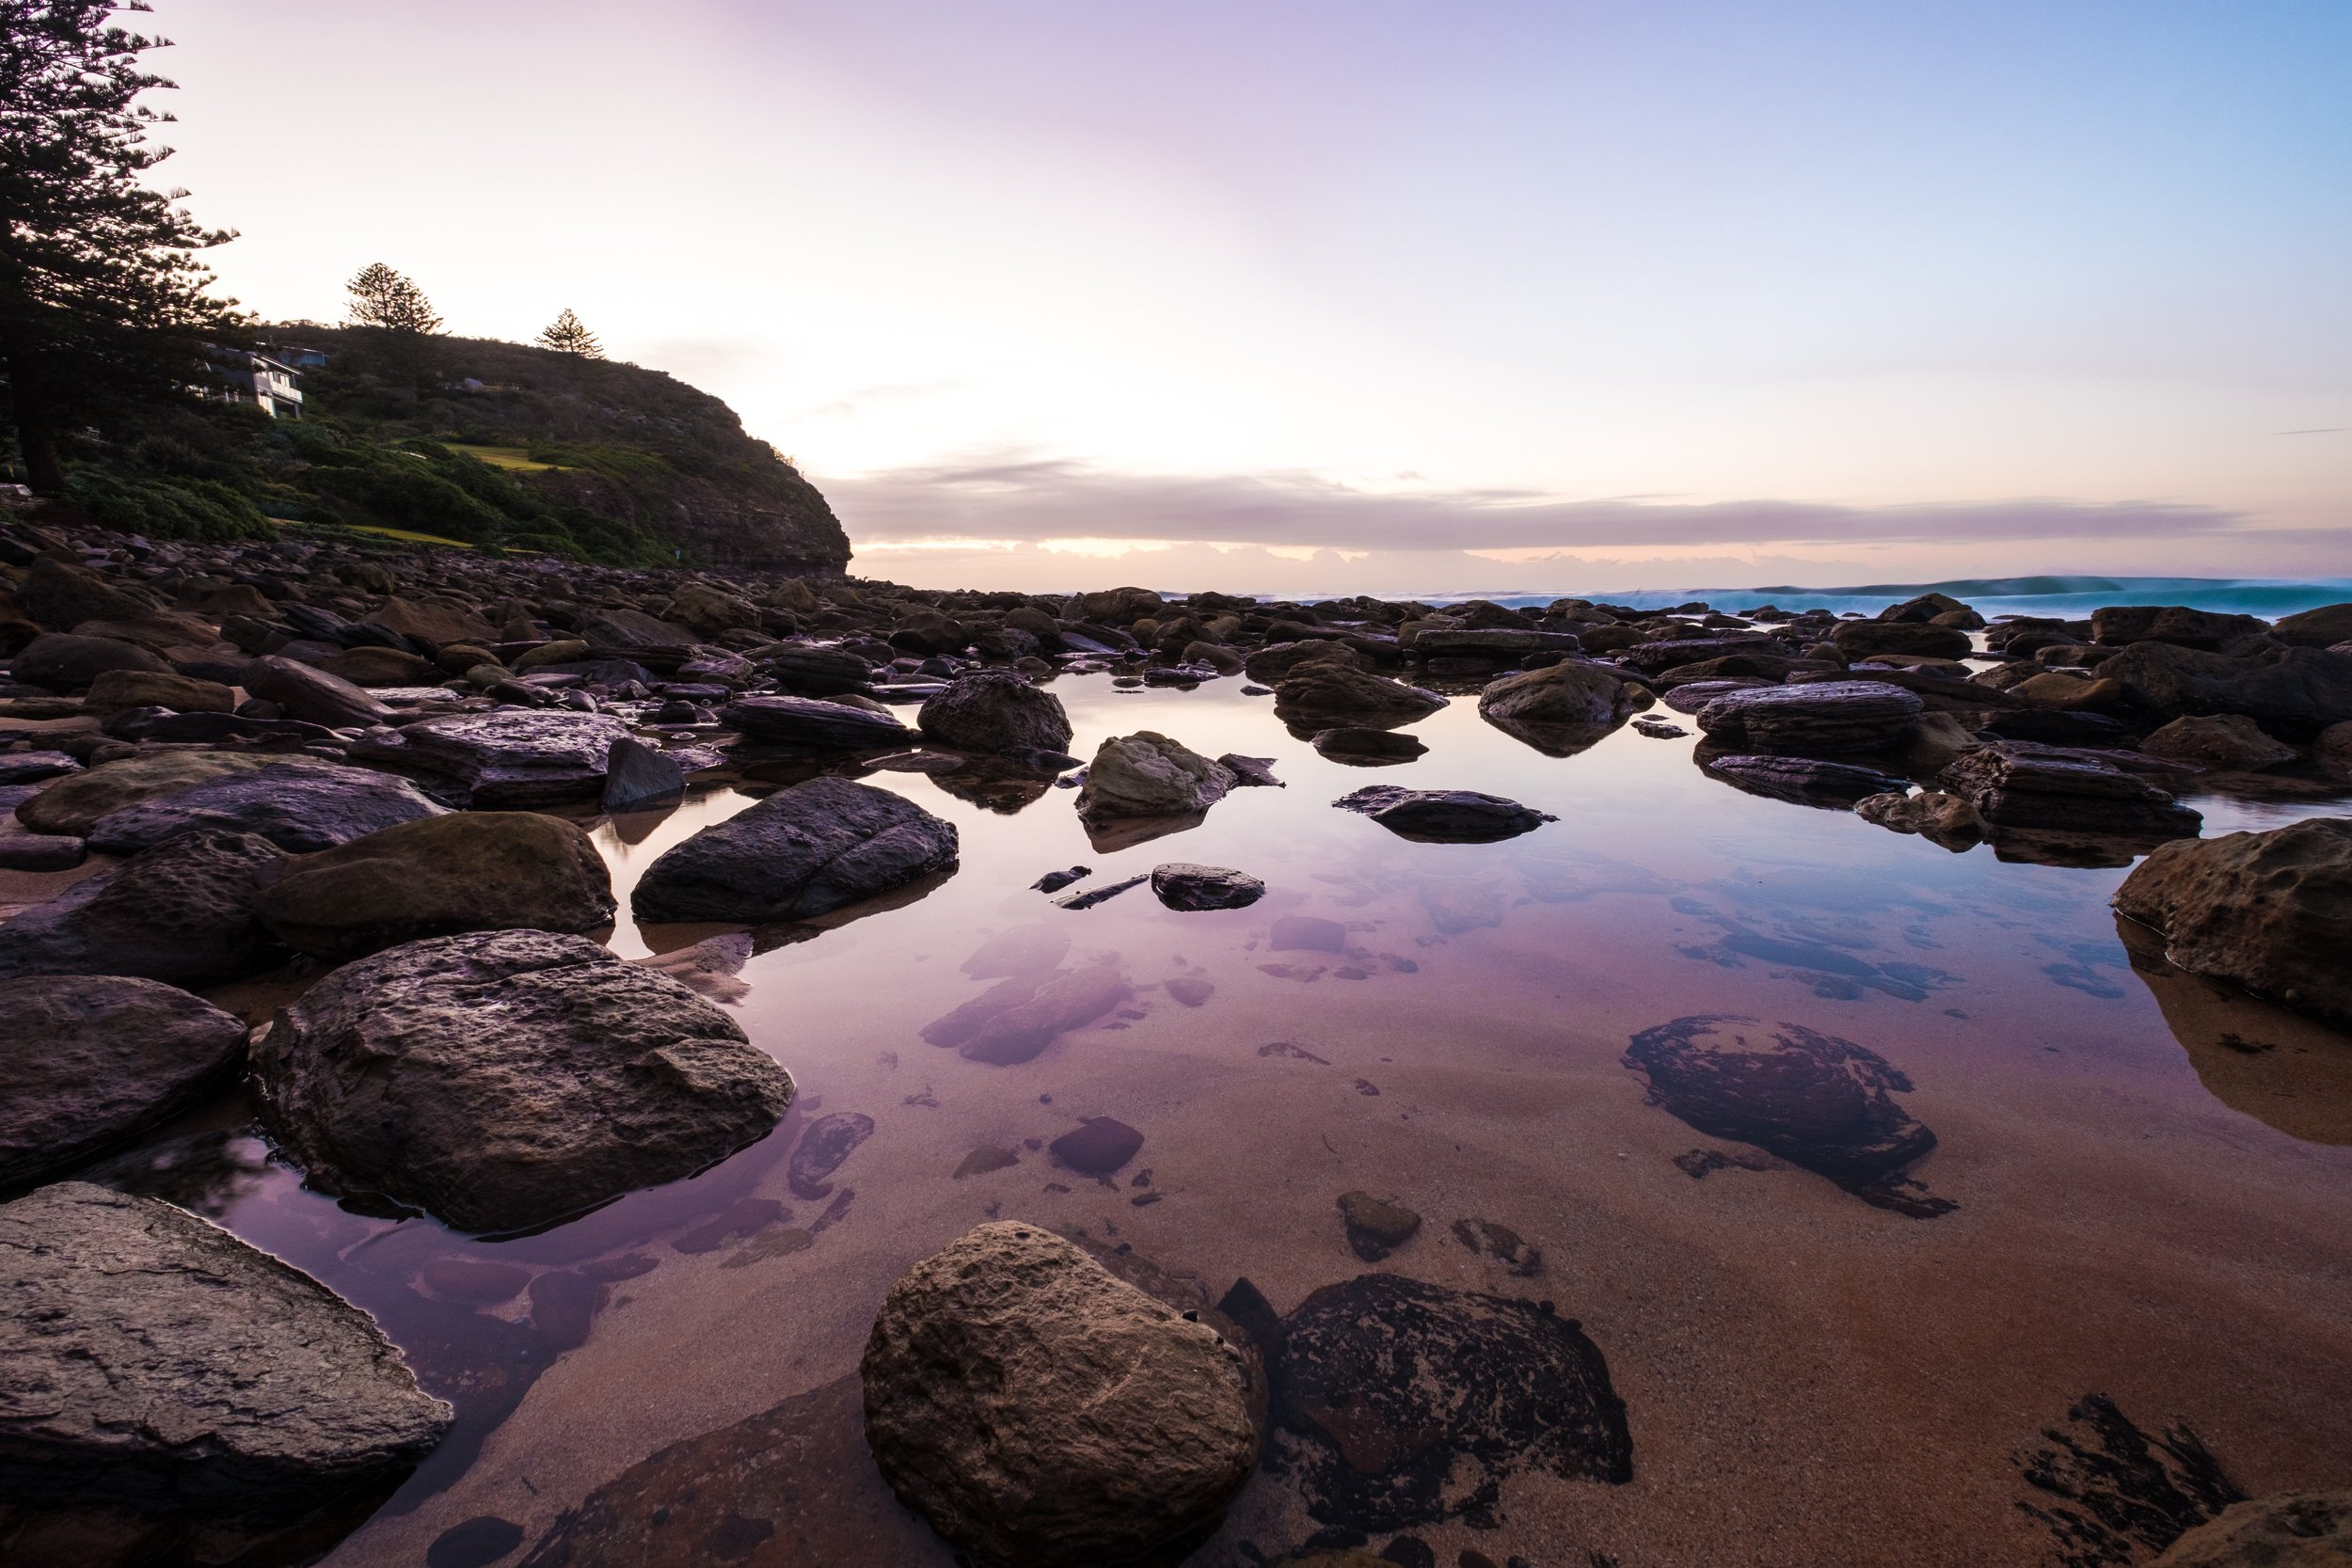 In  The Boy Behind the Curtain , Winton celebrates the life found in rockpools and the objects - or subjects - washed up in the often unappreciated intertidal zones of Australia's beaches.  Image:  James Donaldson  on  Unsplash